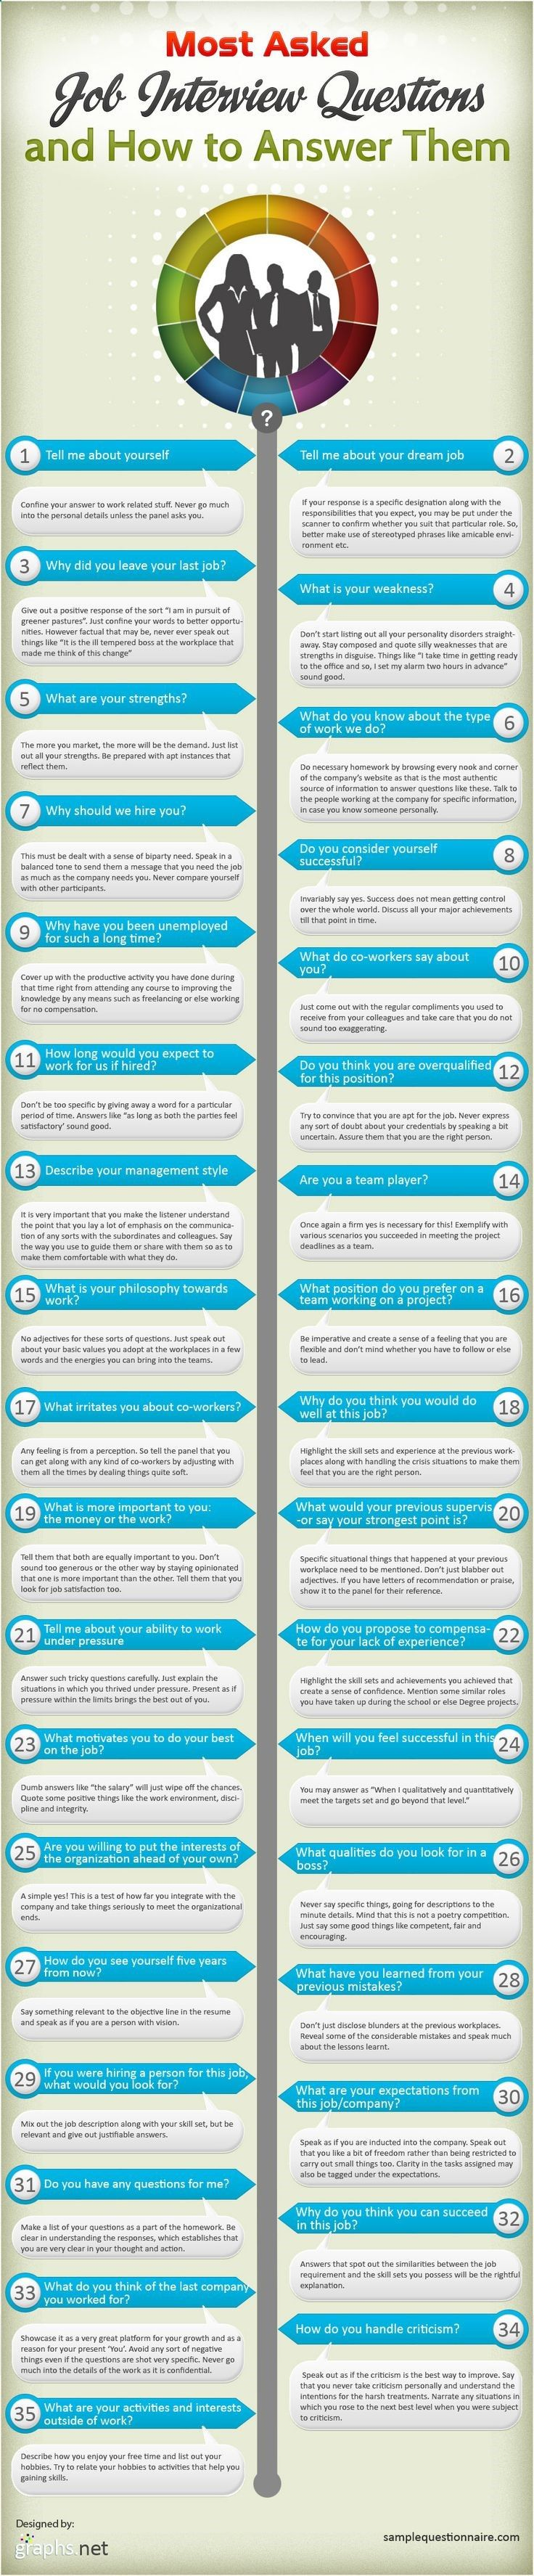 17 best ideas about job interview attire job tips on how to answer the most commonly asked job interview questions